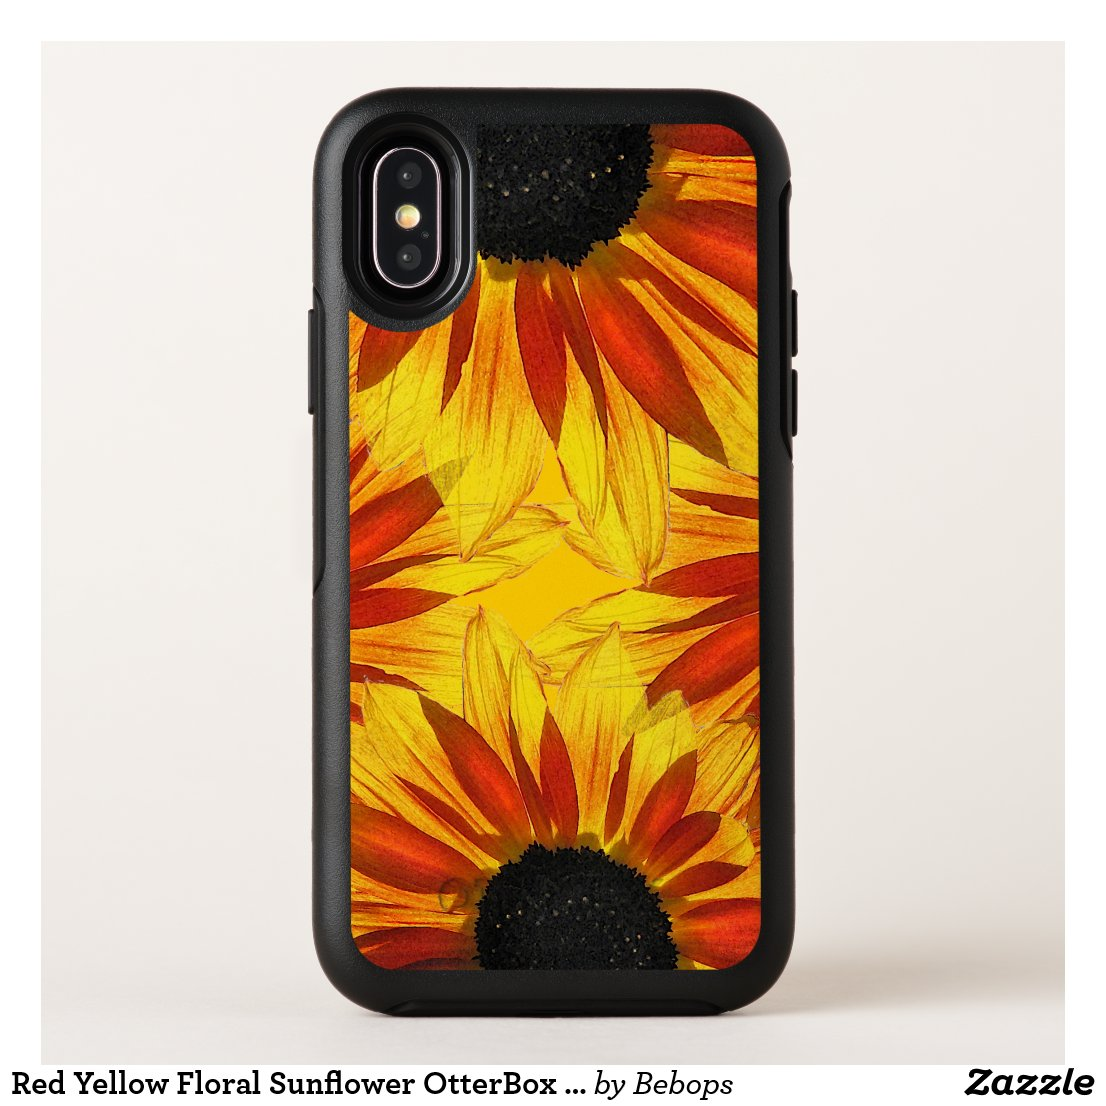 Red Yellow Floral Sunflower OtterBox iPhone X Case